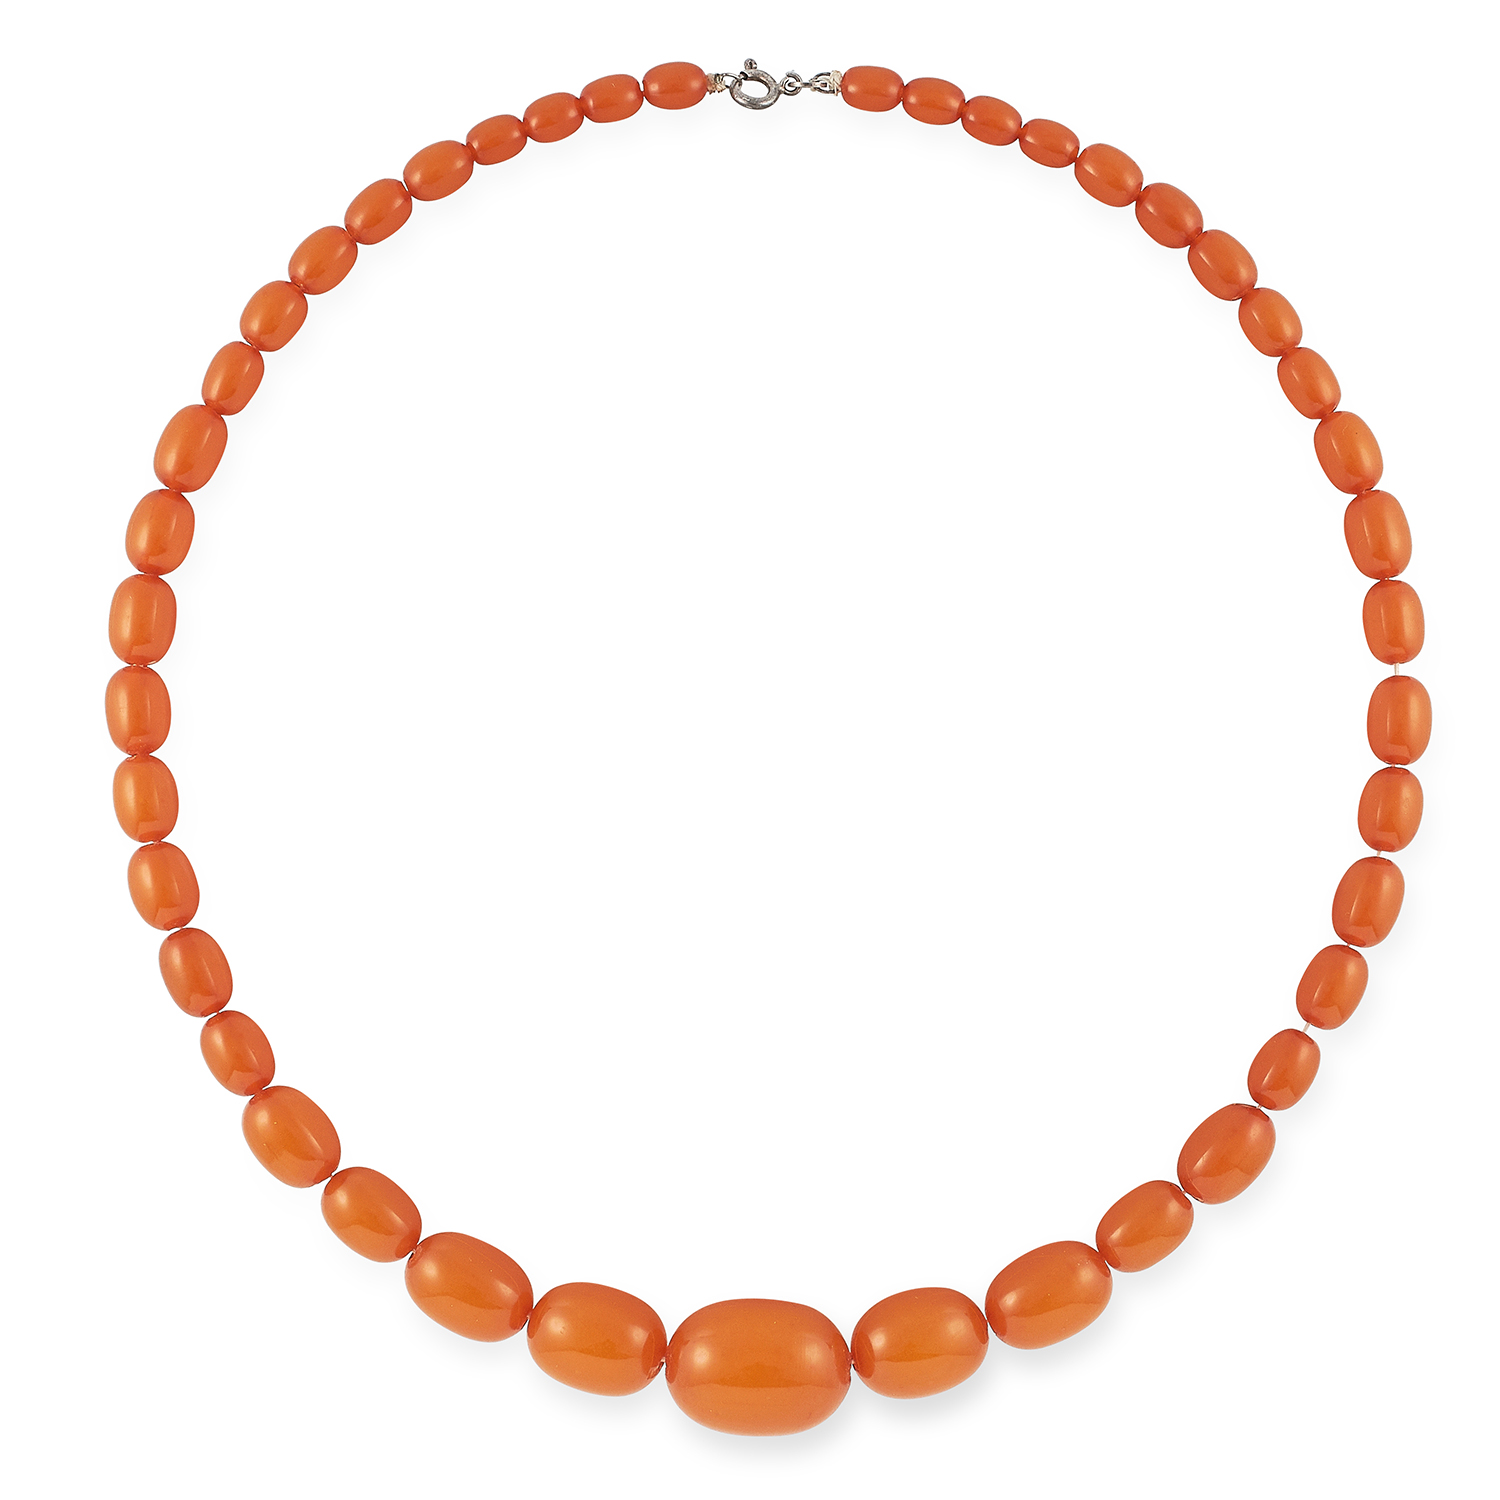 Los 12 - BUTTERSCOTCH AMBER BEAD NECKLACE set with polished amber beads, 46cm, 19.8g.